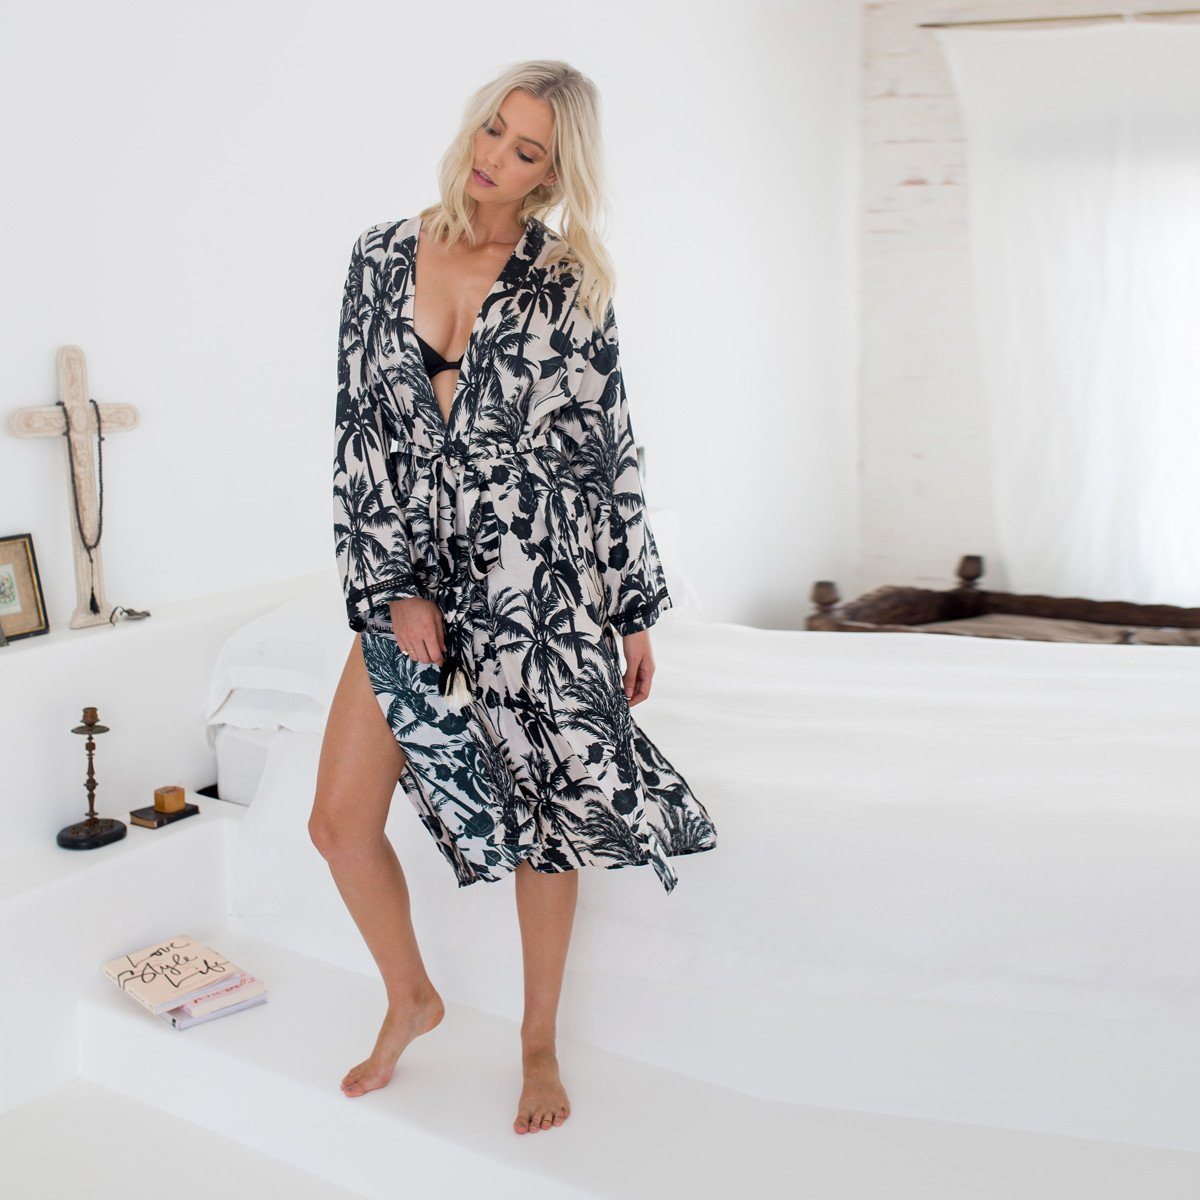 Silk Robe - Everyday Luxury - SASKIA in Neutral Palm, Australian Designer